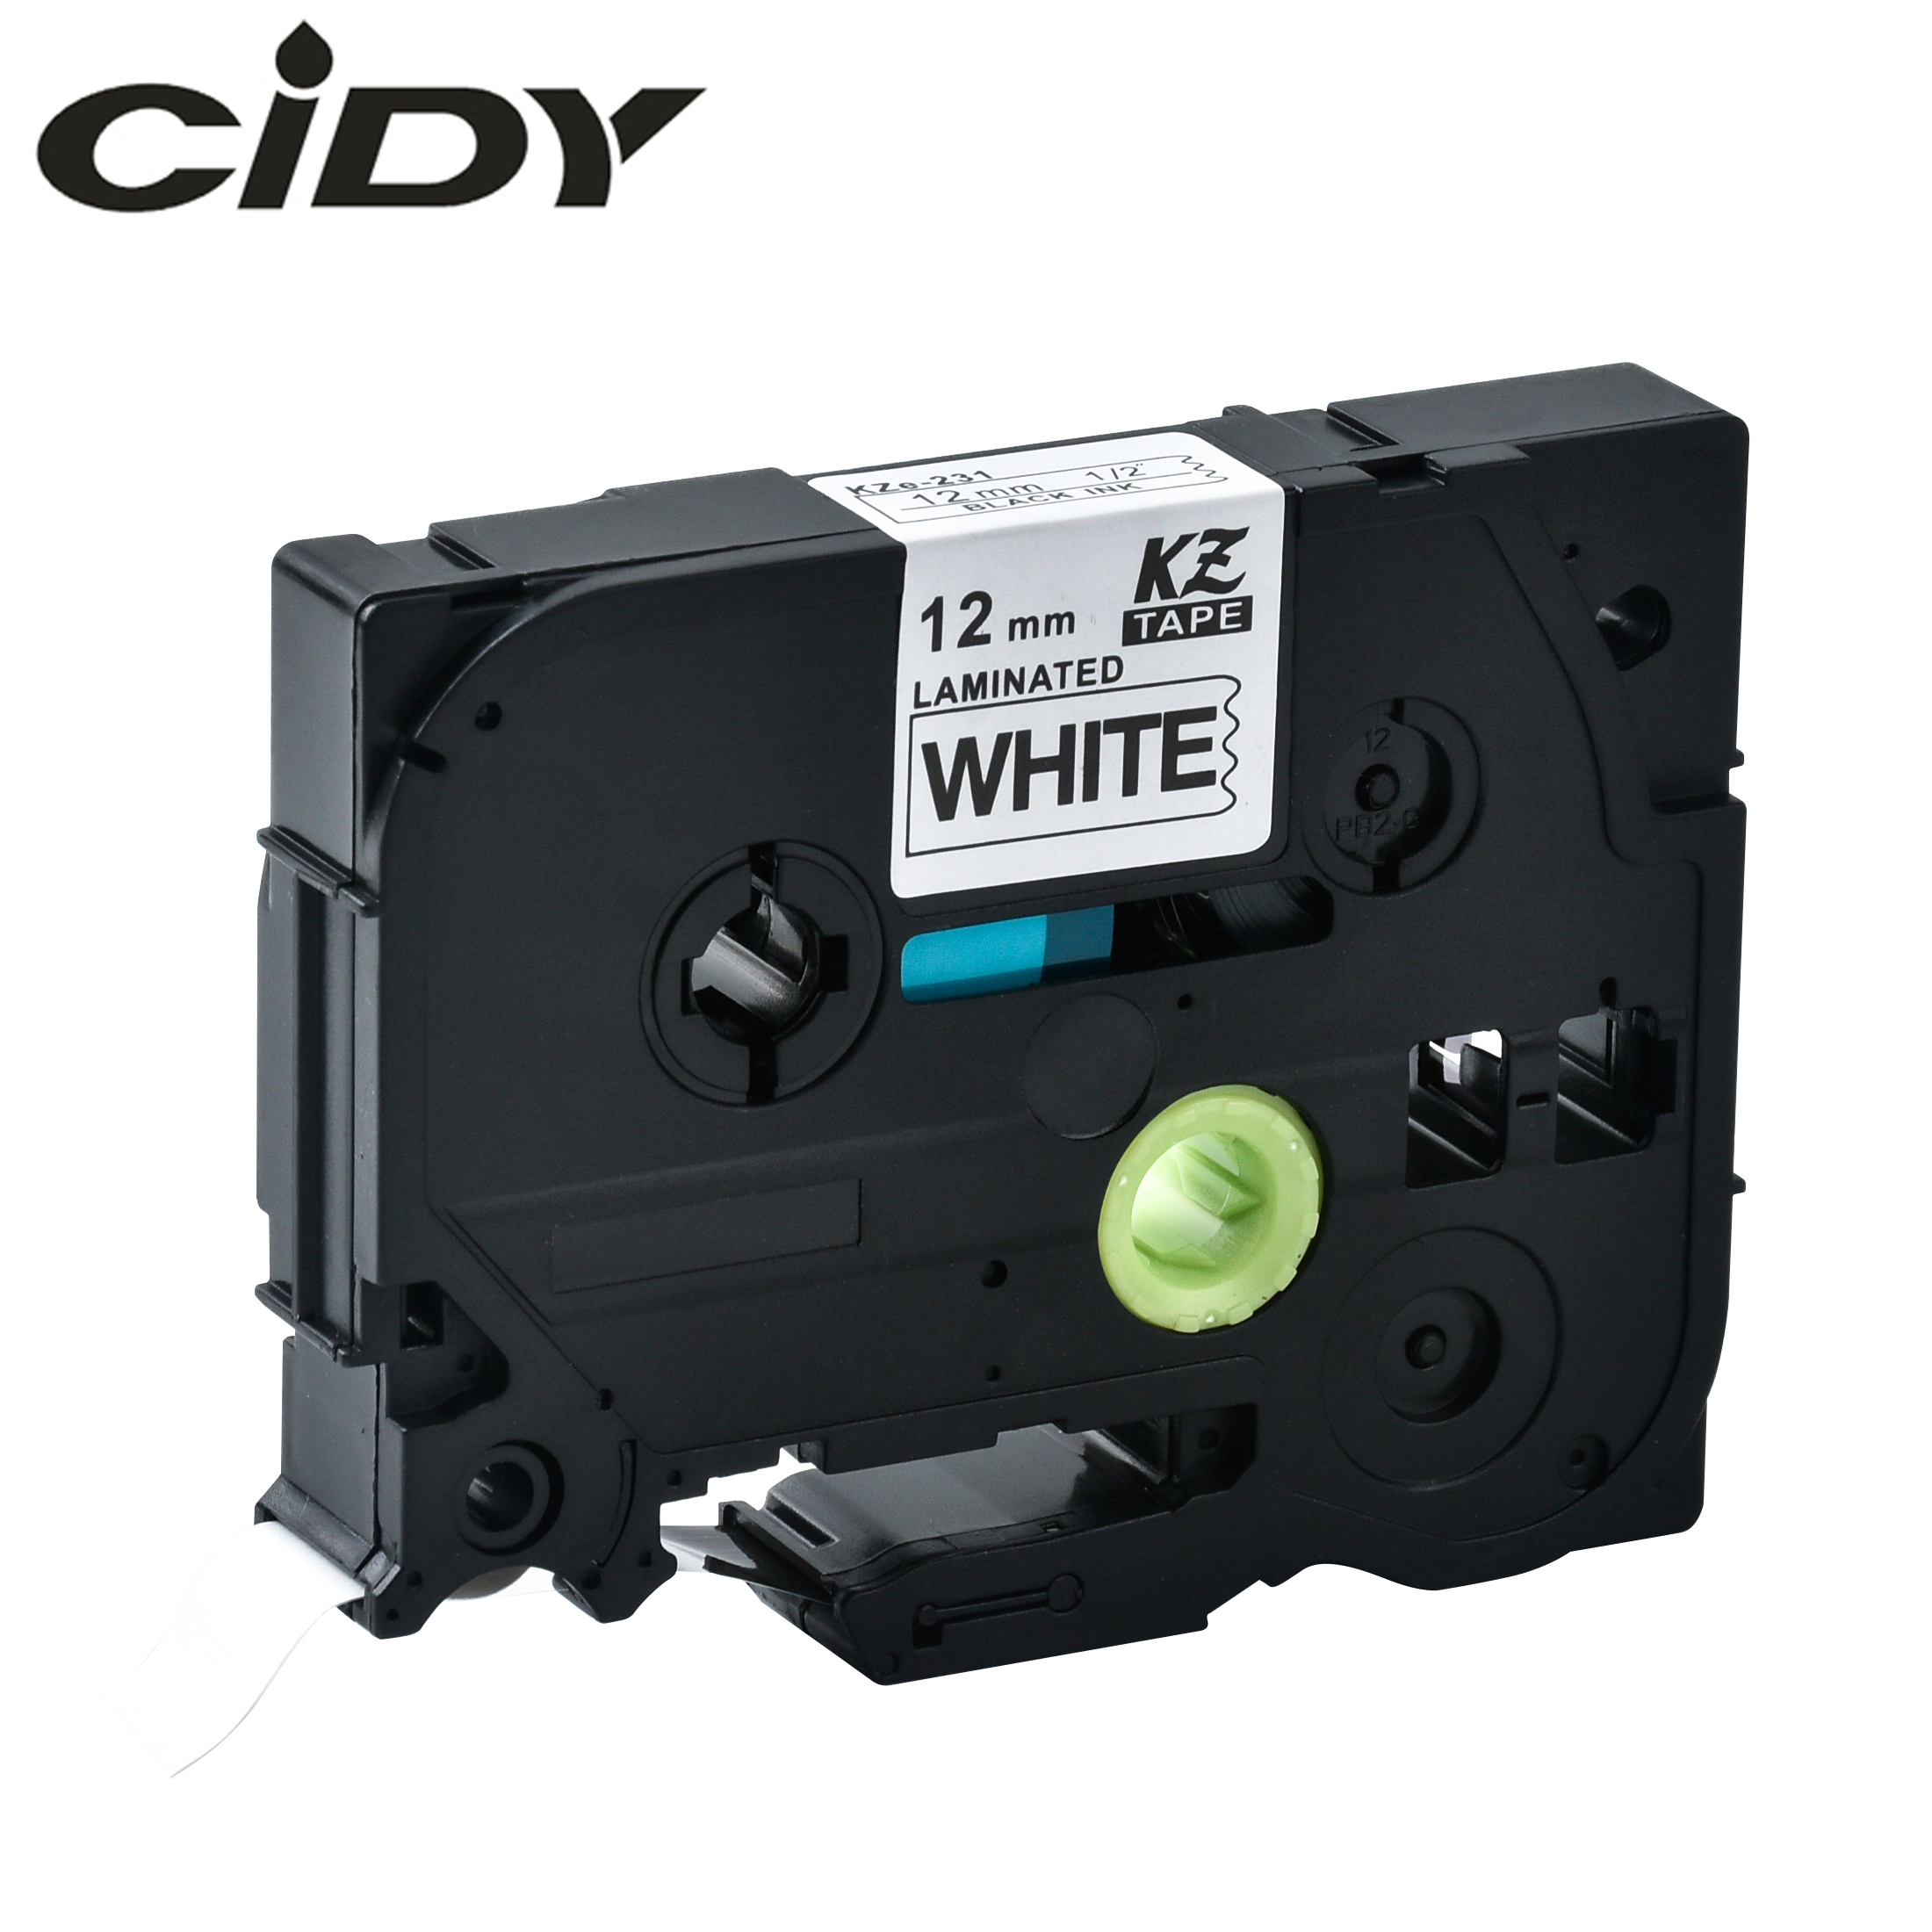 CIDY Compatible p touch tz231 tze231 12mm Black on white label tape tze 231 tz 231